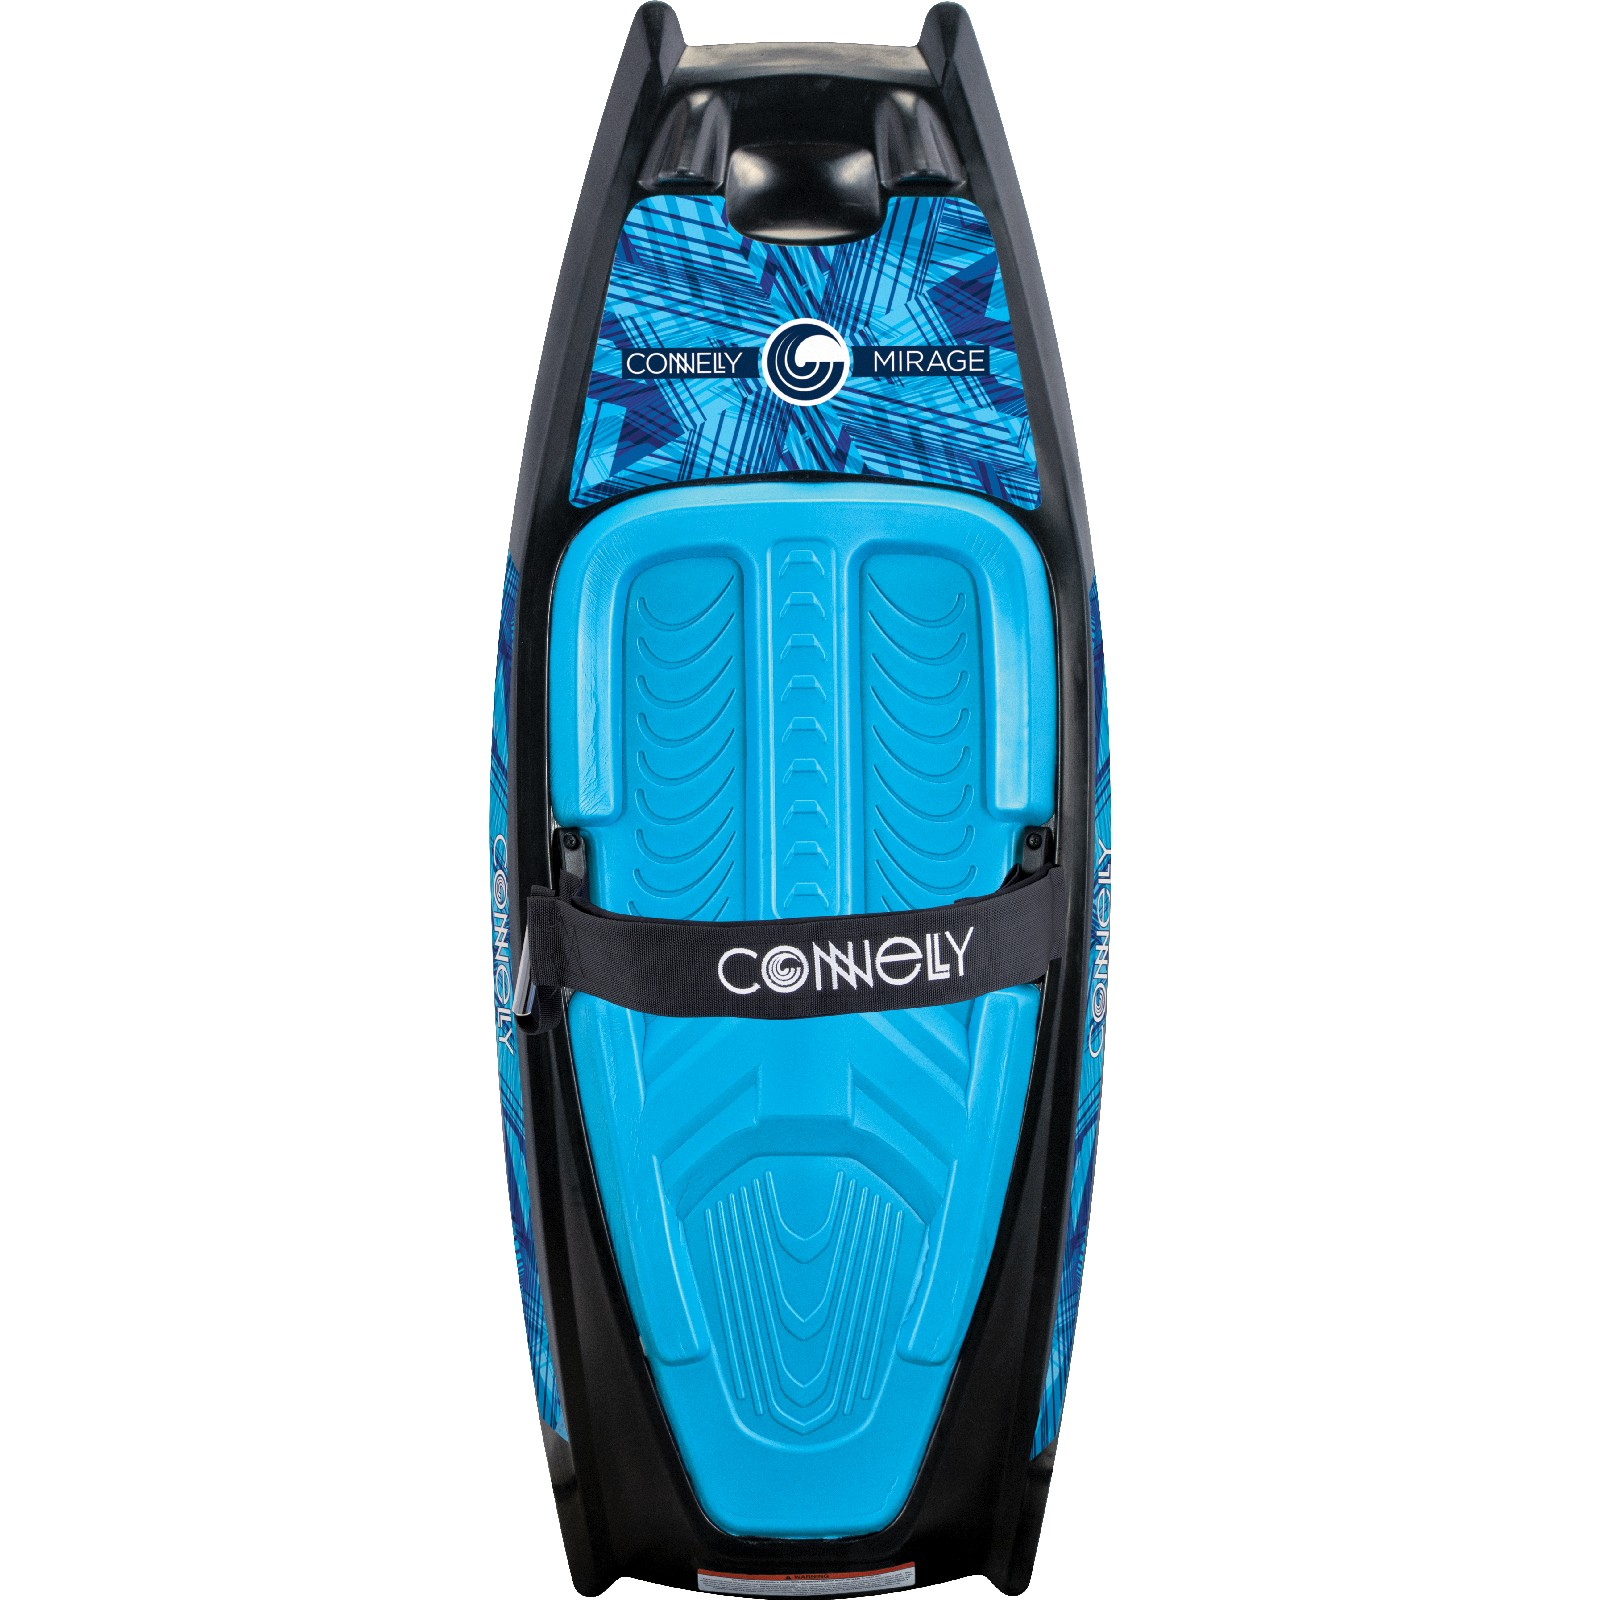 MIRAGE KNEEBOARD CONNELLY 2019